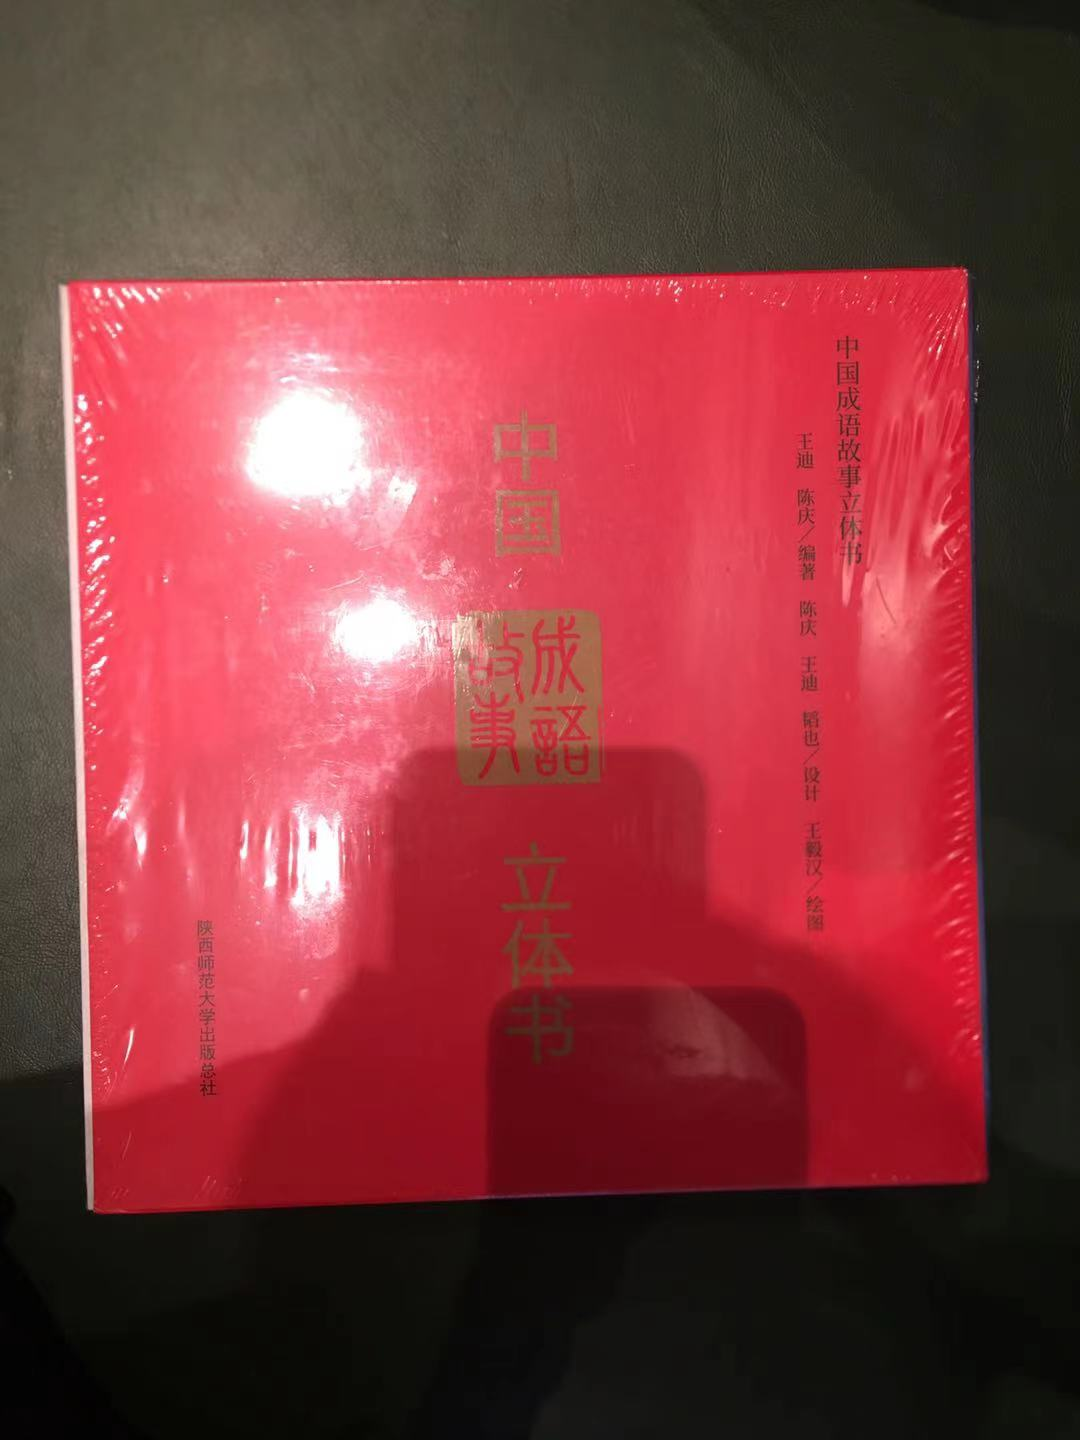 Tradition Chinese Idioms and Stories.Three Dimensional Book.Language:Simplified Chinese.2 Volumes.There are:Wisdom and Mythology